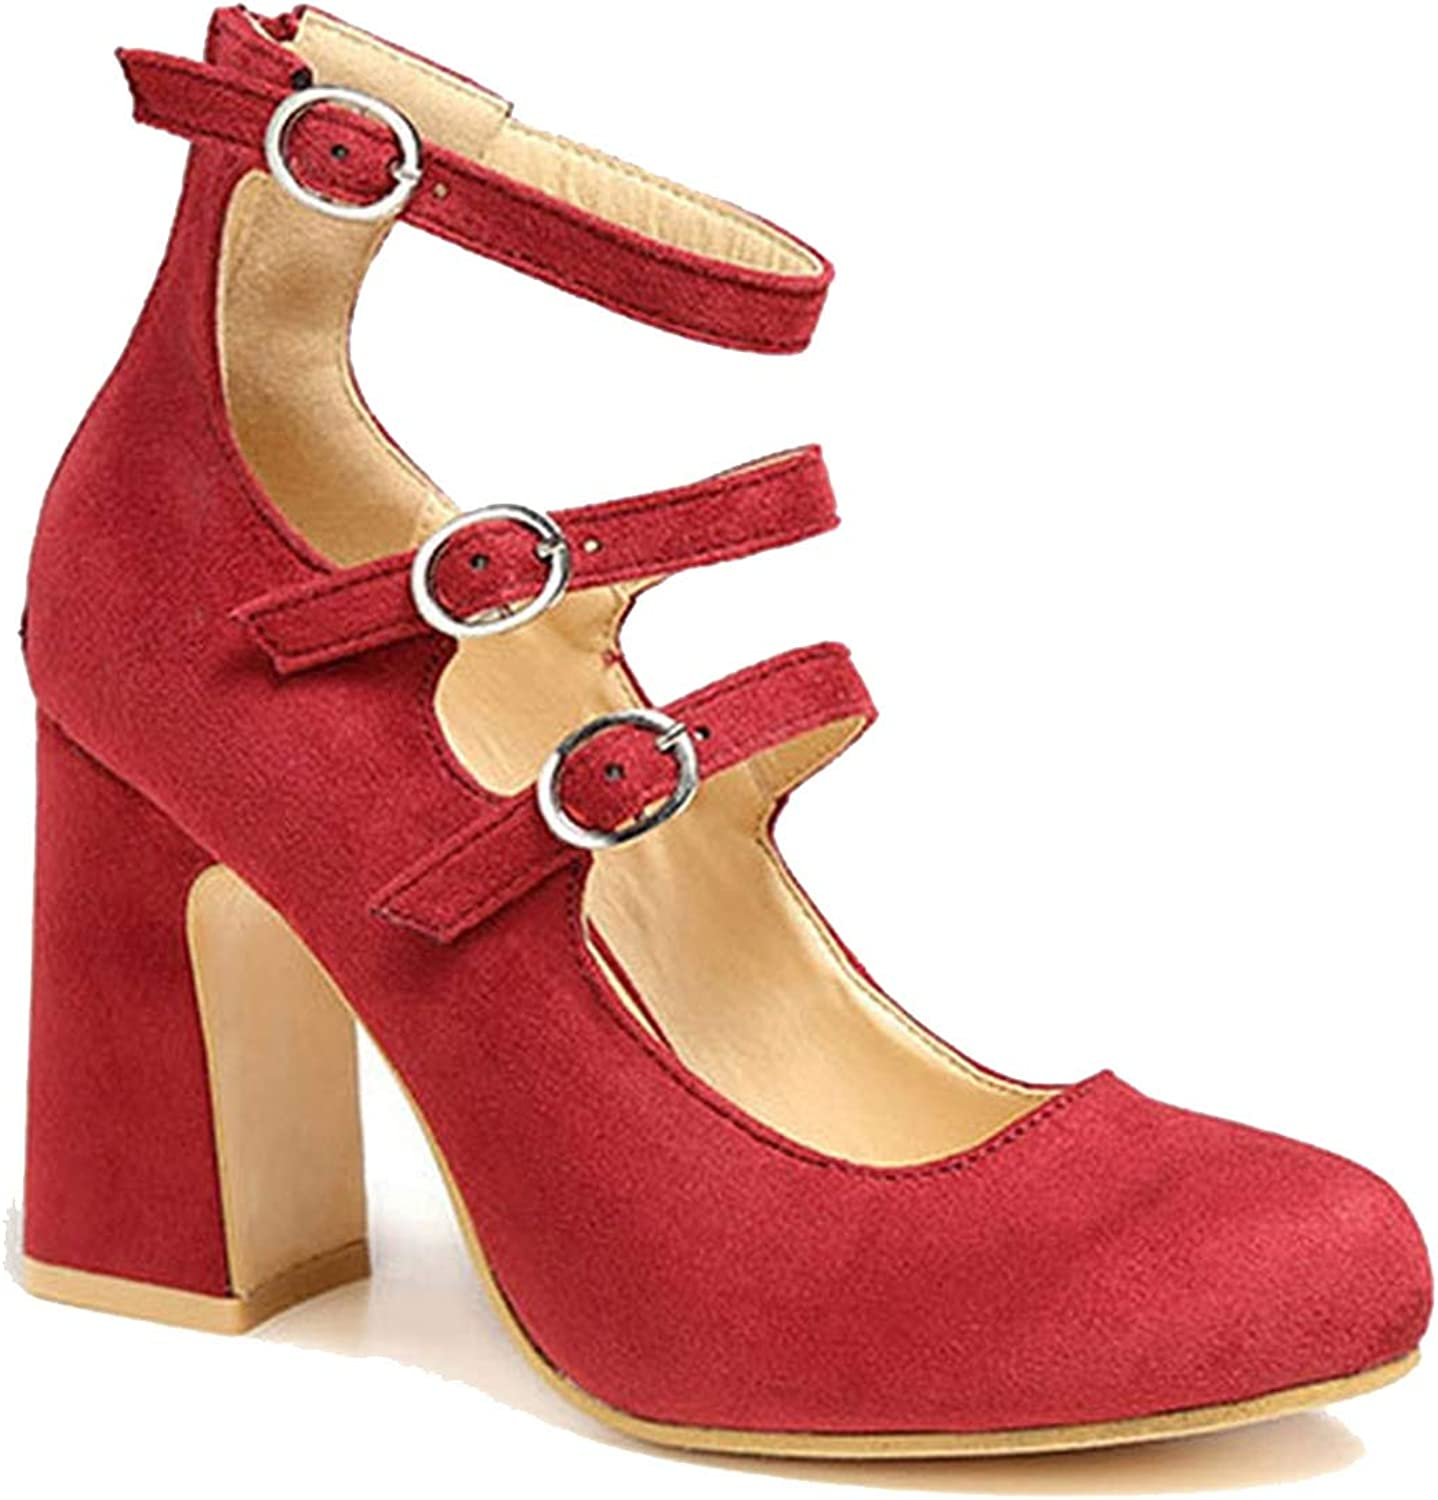 Women shoes Middle Heels Slip-On Pumps Shallow Buckle Wedding shoes shoes Femme Drop-Shipping Red,8.5